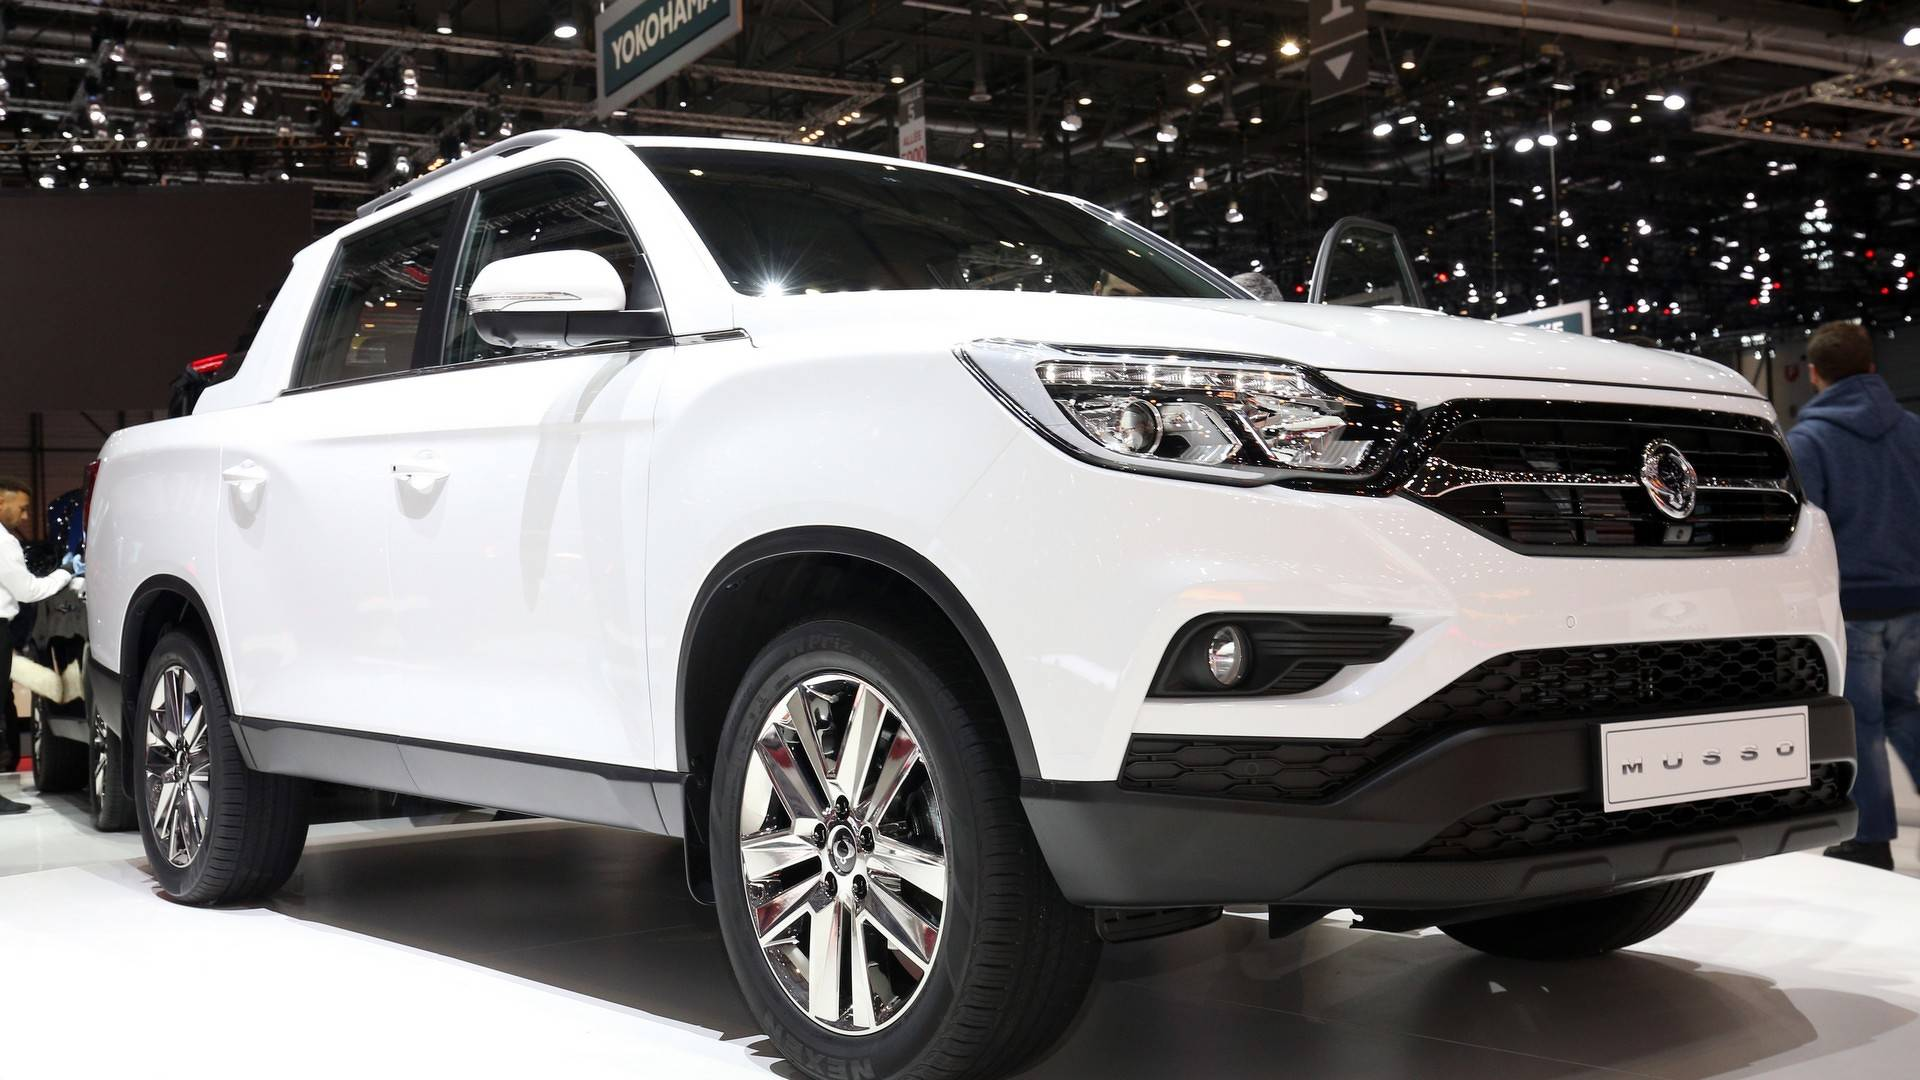 Ssang Yong Musso Car Reviews 2018 Daewoo Wiring Diagram Ssangyong Pickup Truck Debuts At Geneva Motor Show